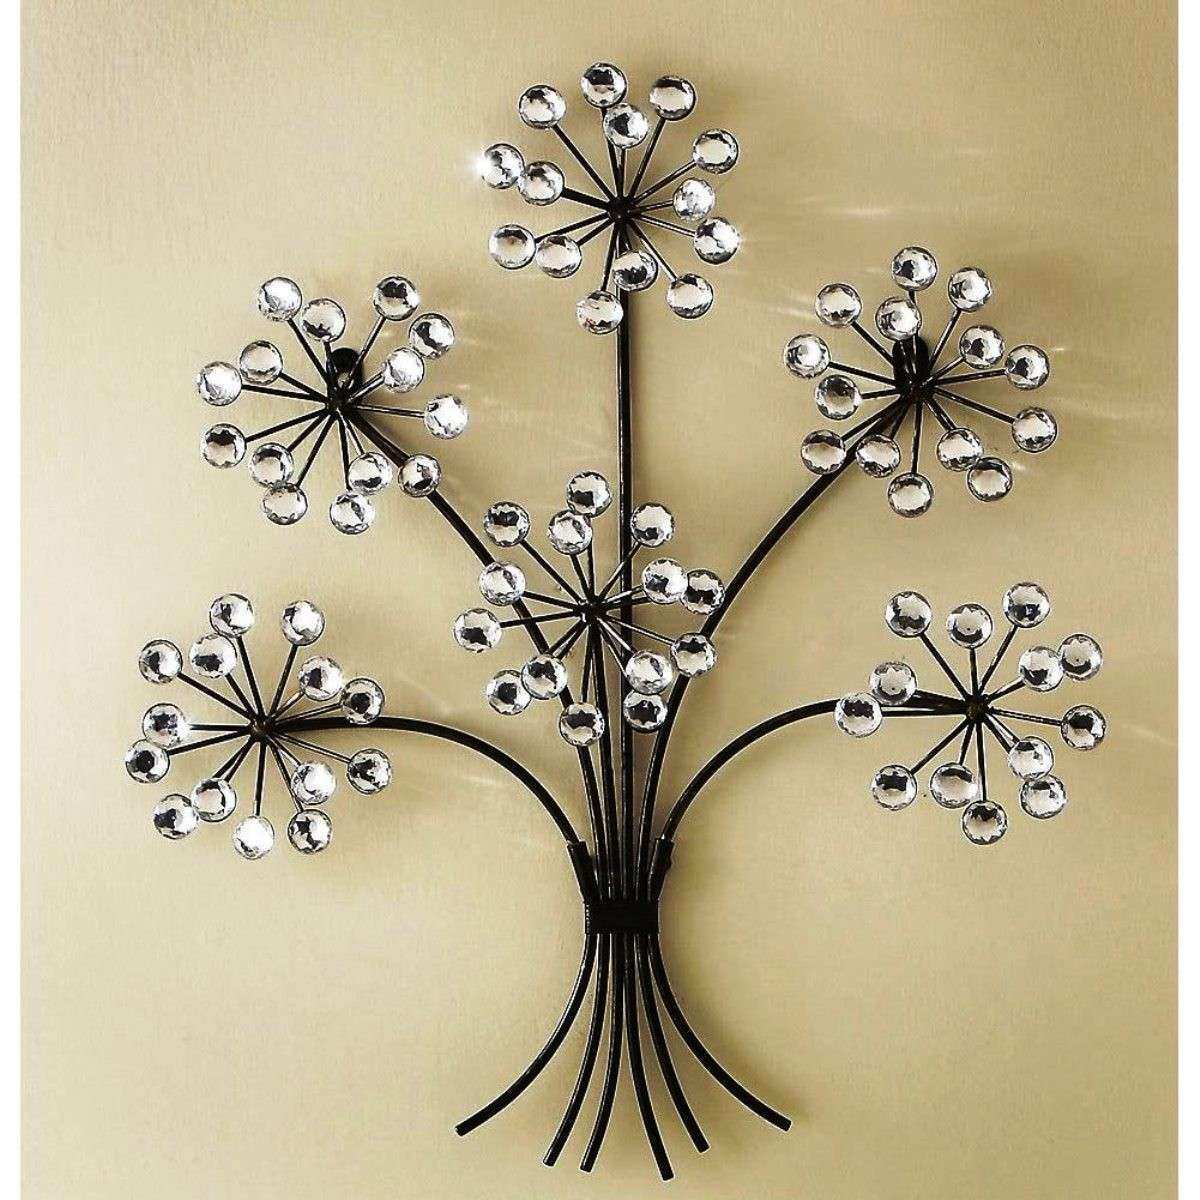 Attractive Unique Metal Wall Art Decor Model - Wall Art Collections ...